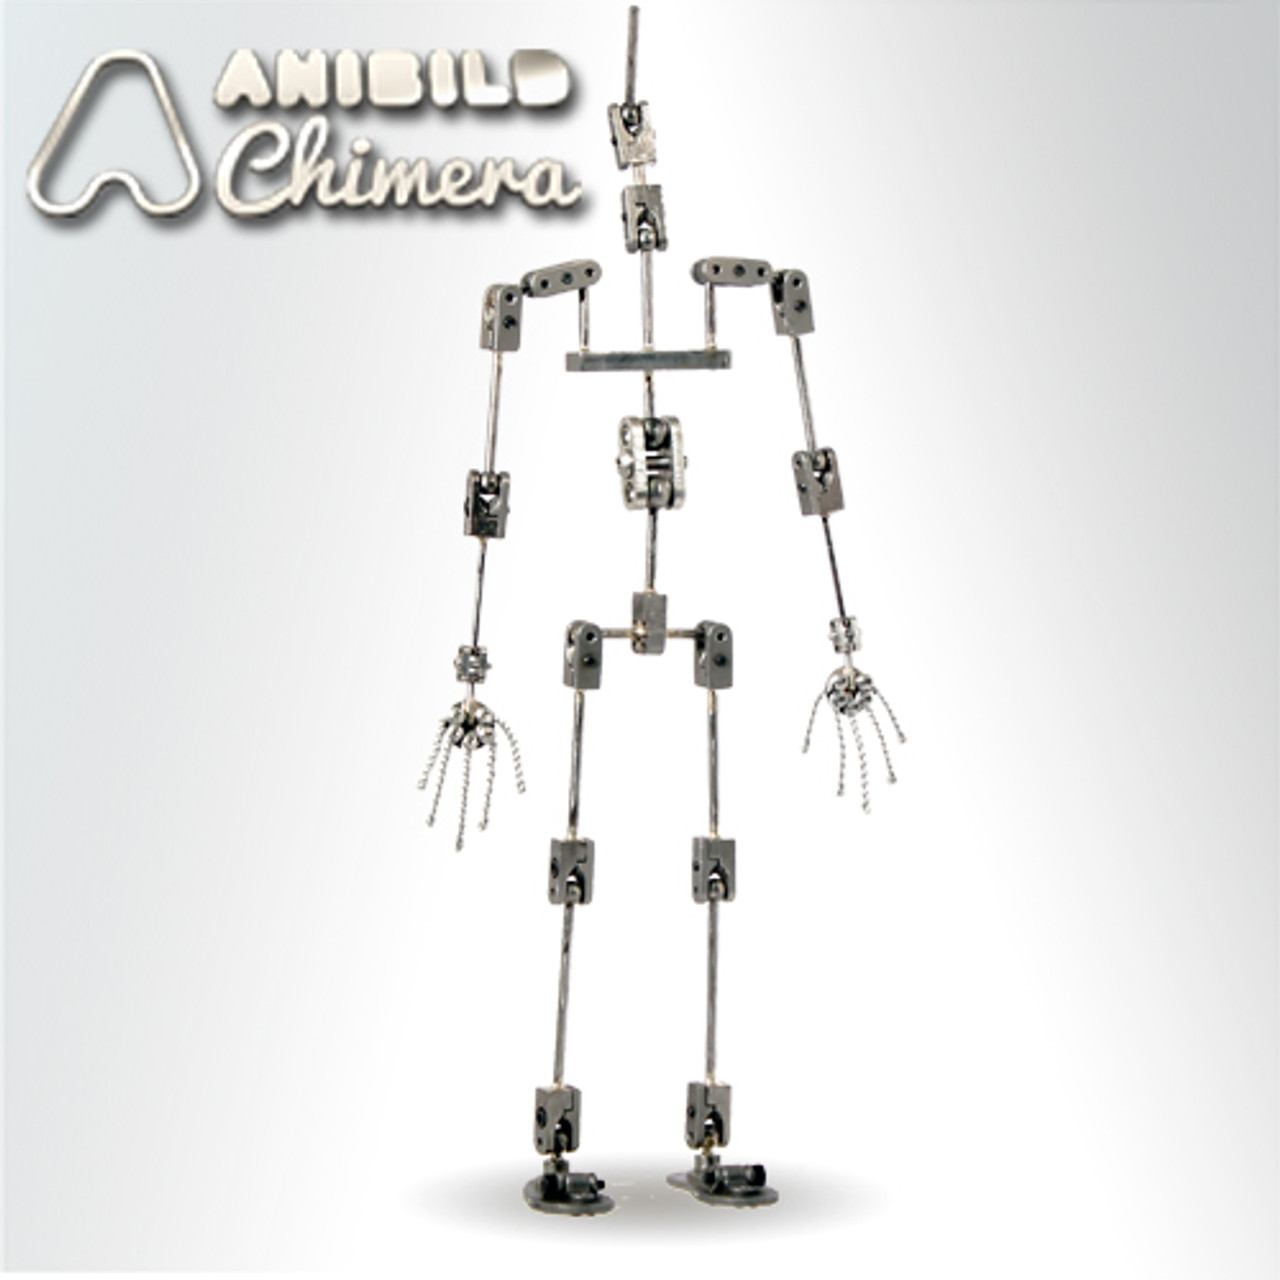 Anibild Chimera MALE1C